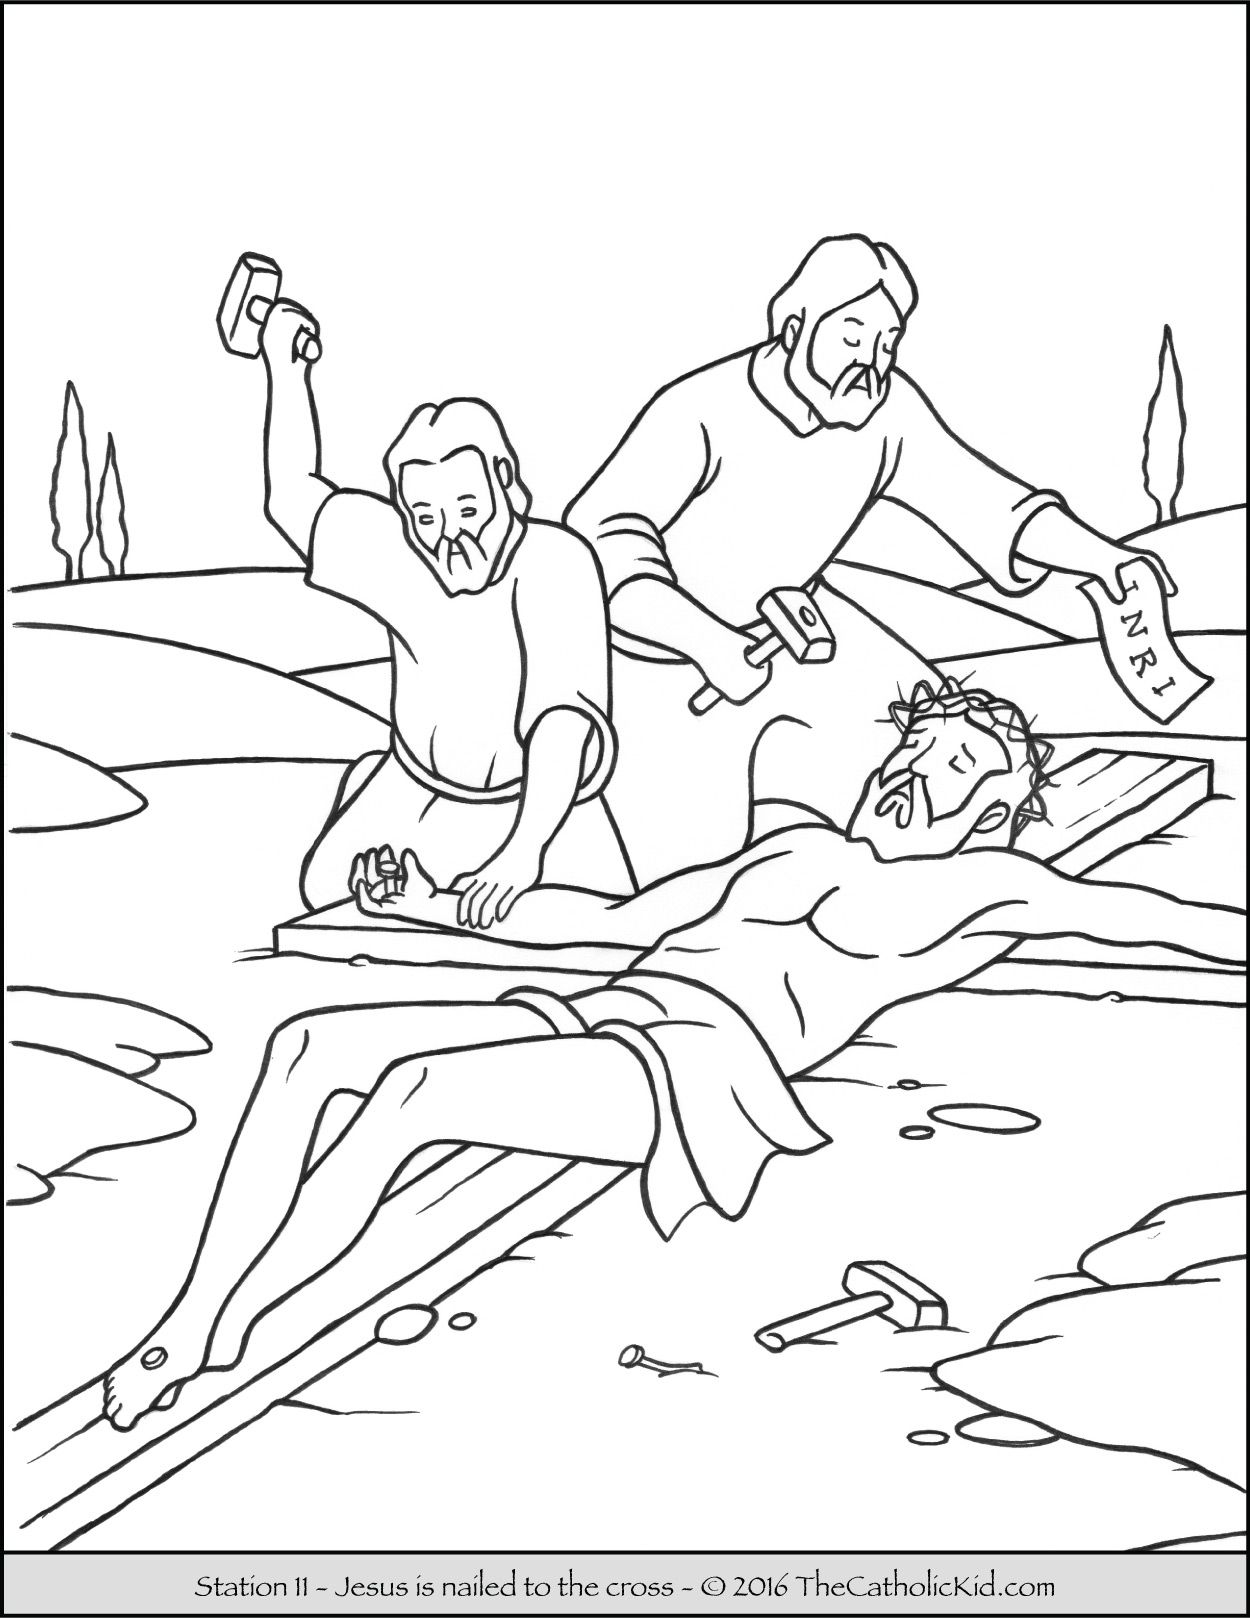 Coloring pages for adults crosses - Stations Of The Cross Coloring Pages 11 Jesus Is Nailed To The Cross